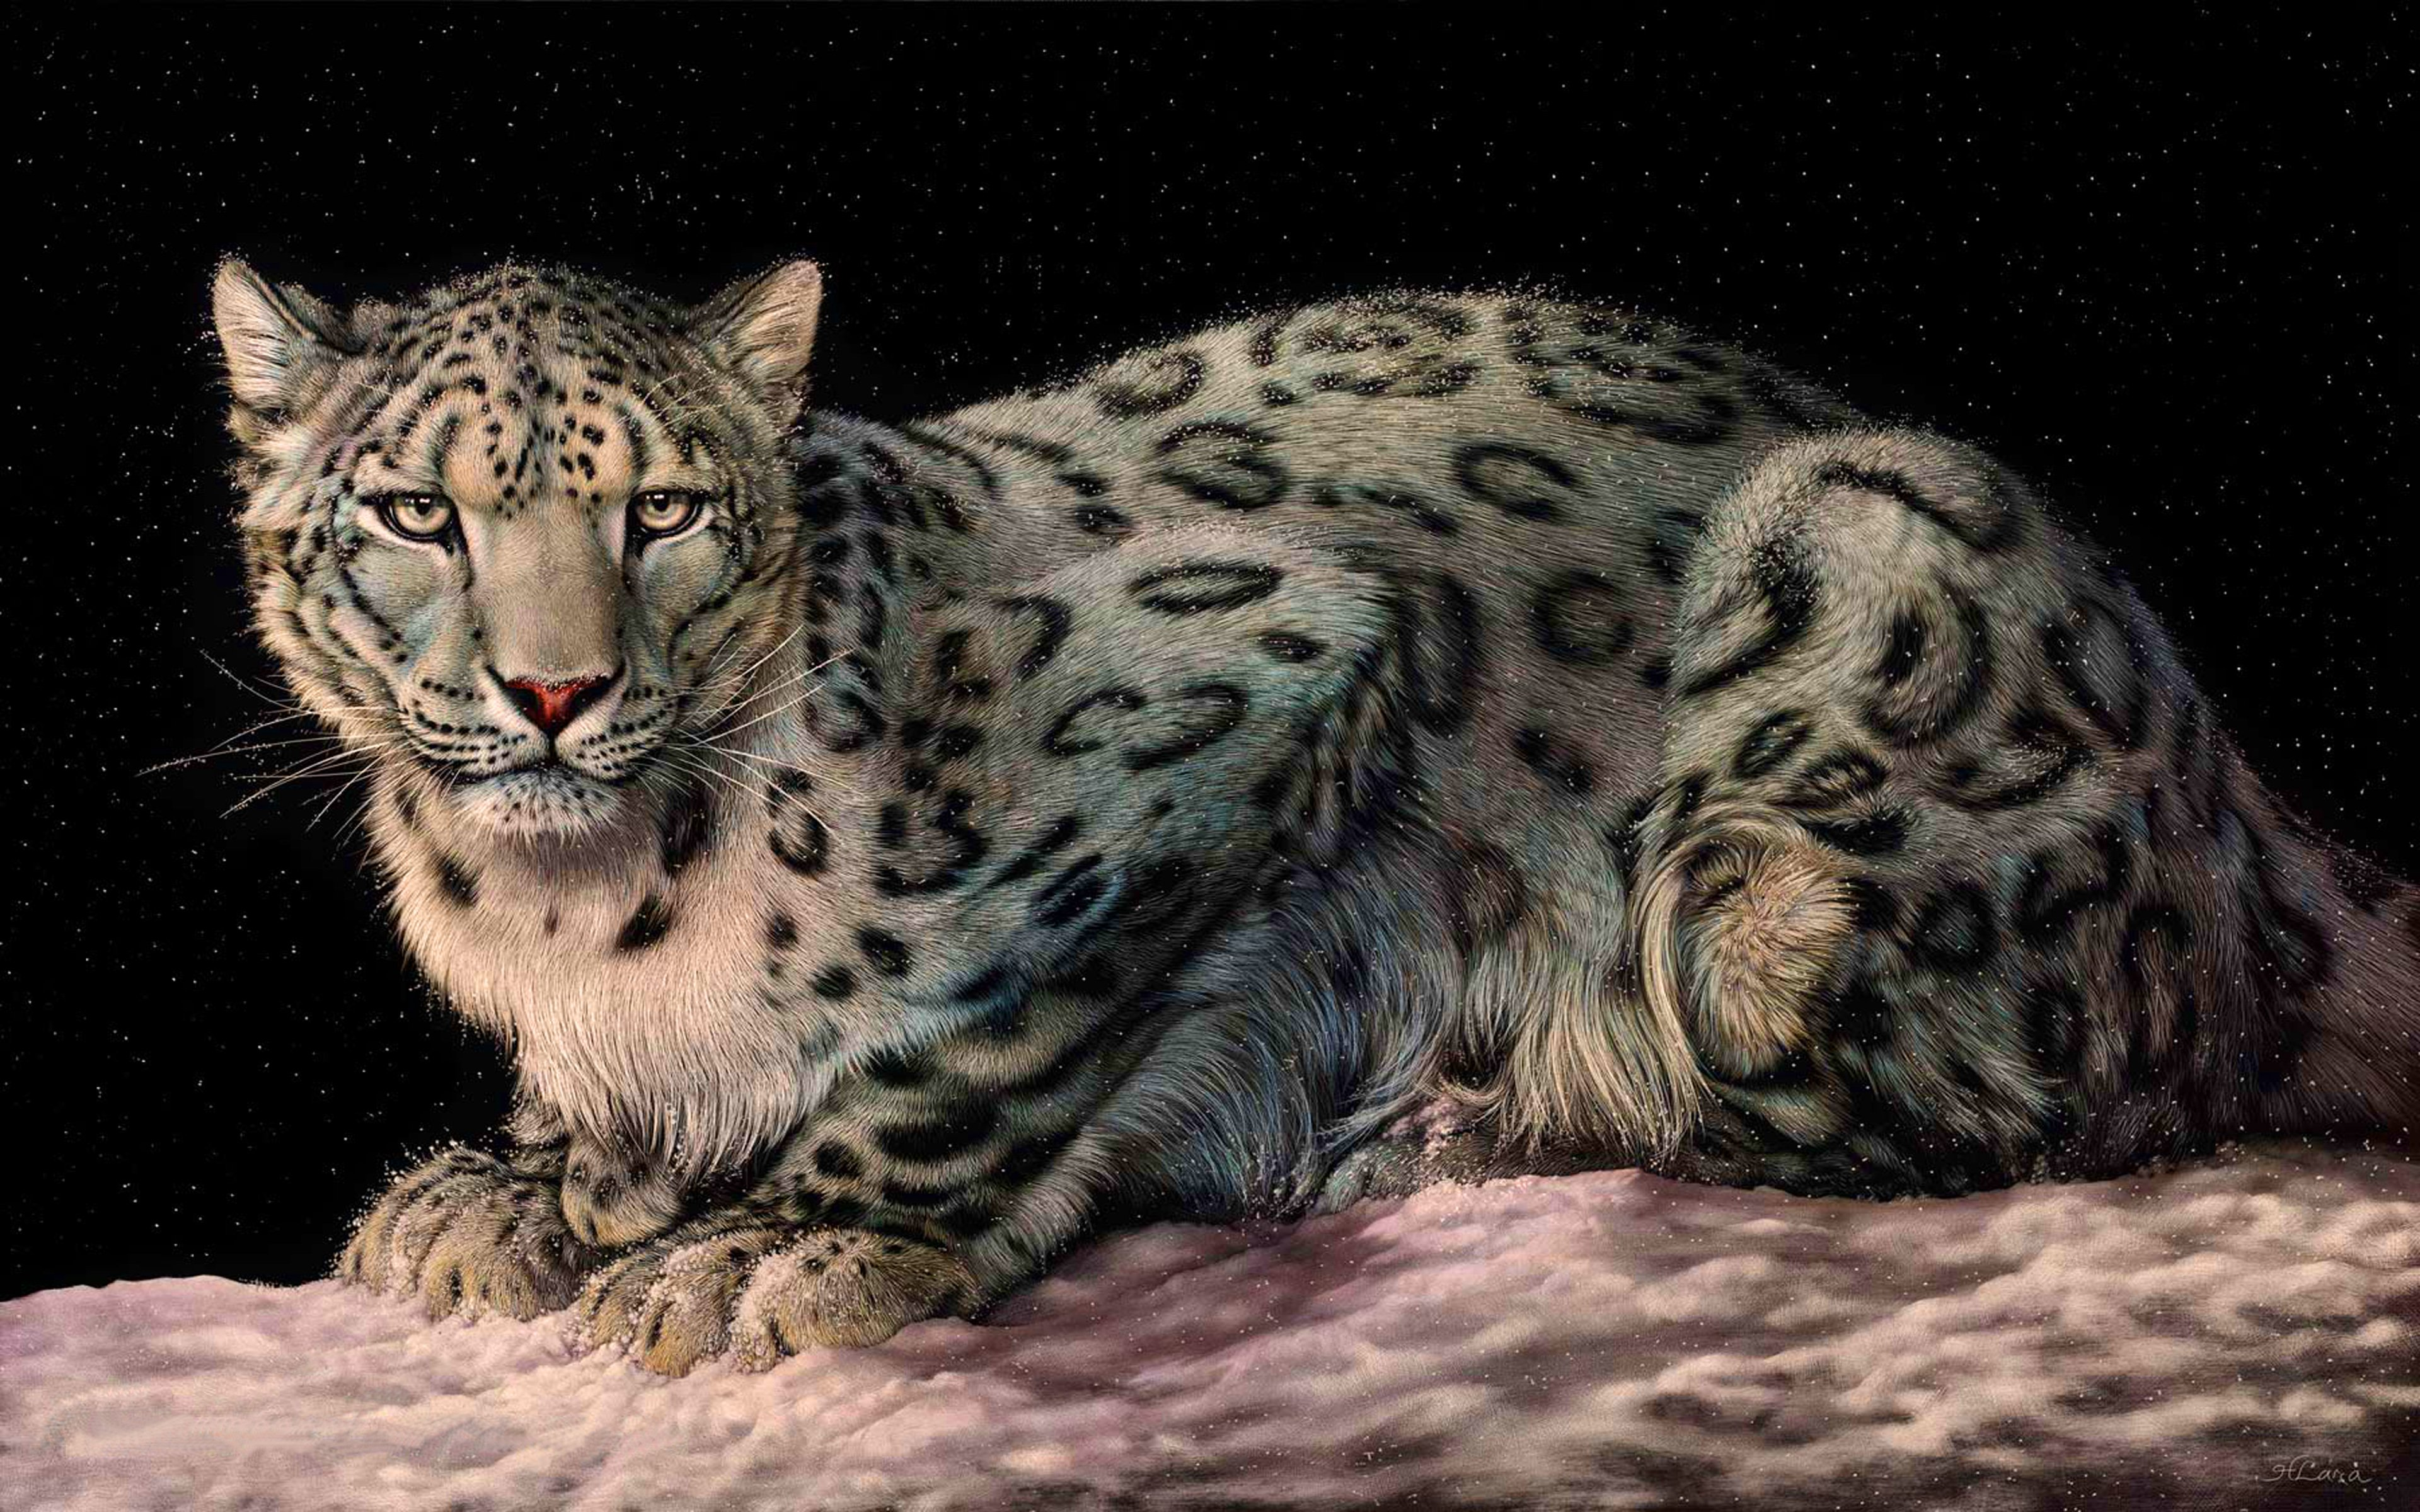 Leopard 4k Wallpapers For Your Desktop Or Mobile Screen Free And Easy To Download